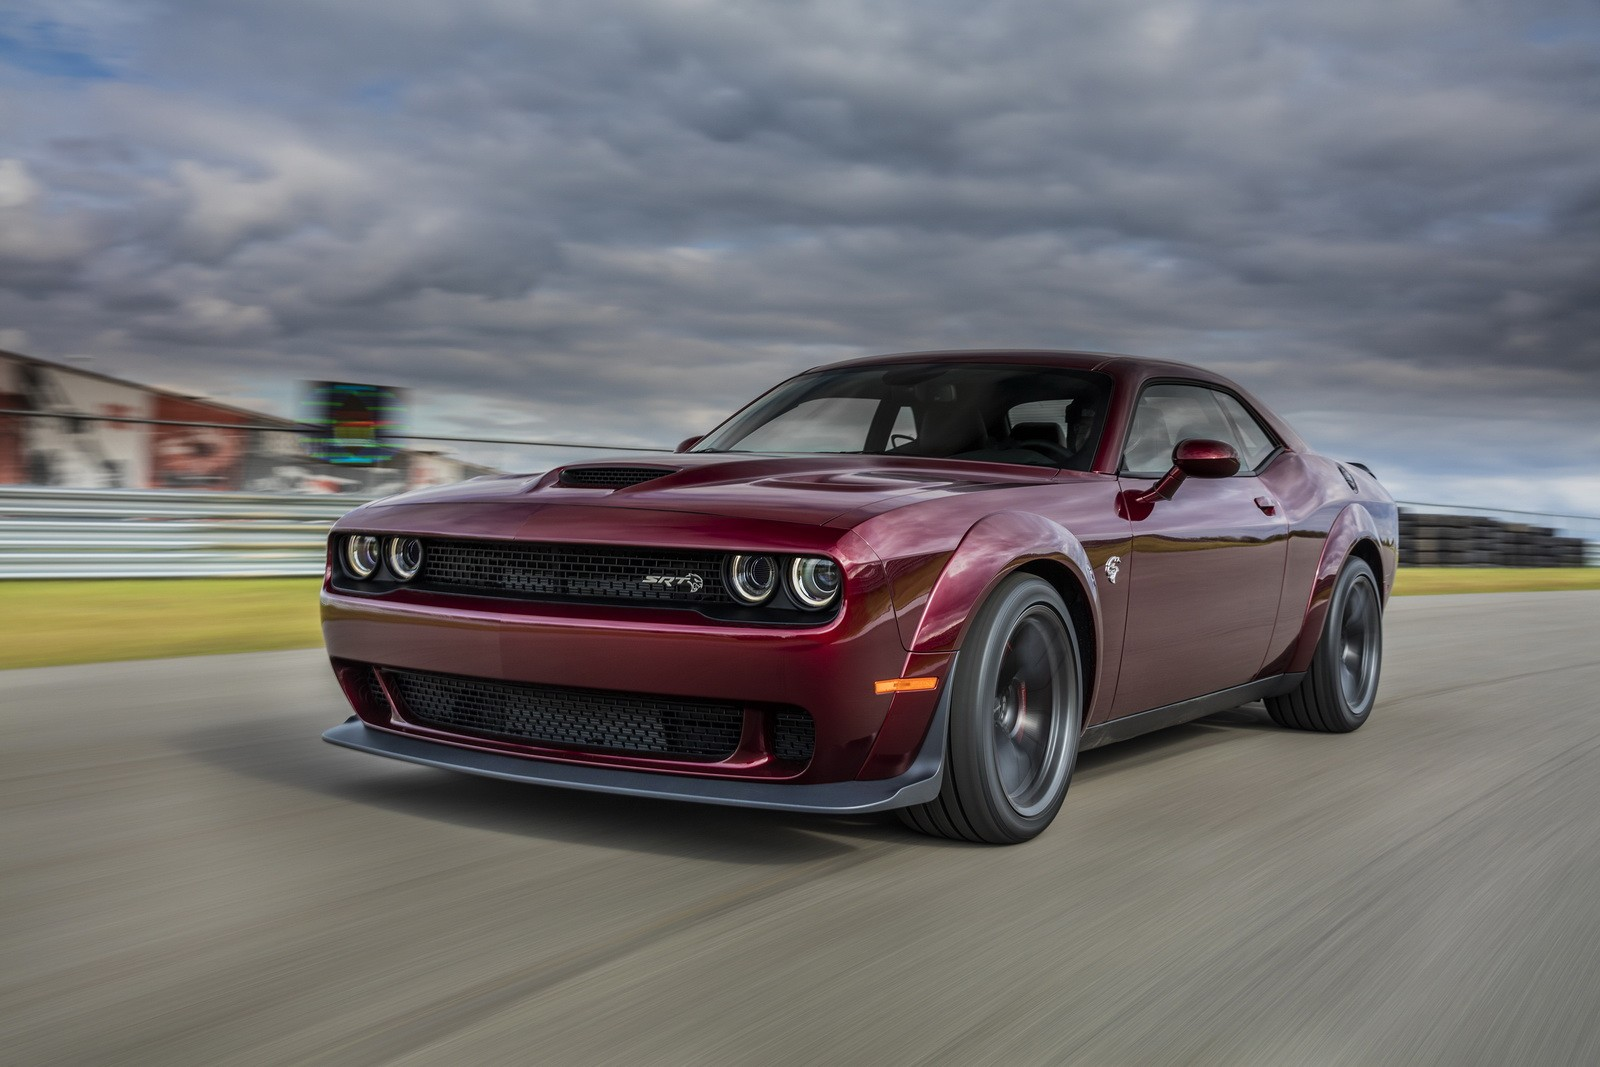 2019 dodge challenger srt hellcat previewed ahead of. Black Bedroom Furniture Sets. Home Design Ideas